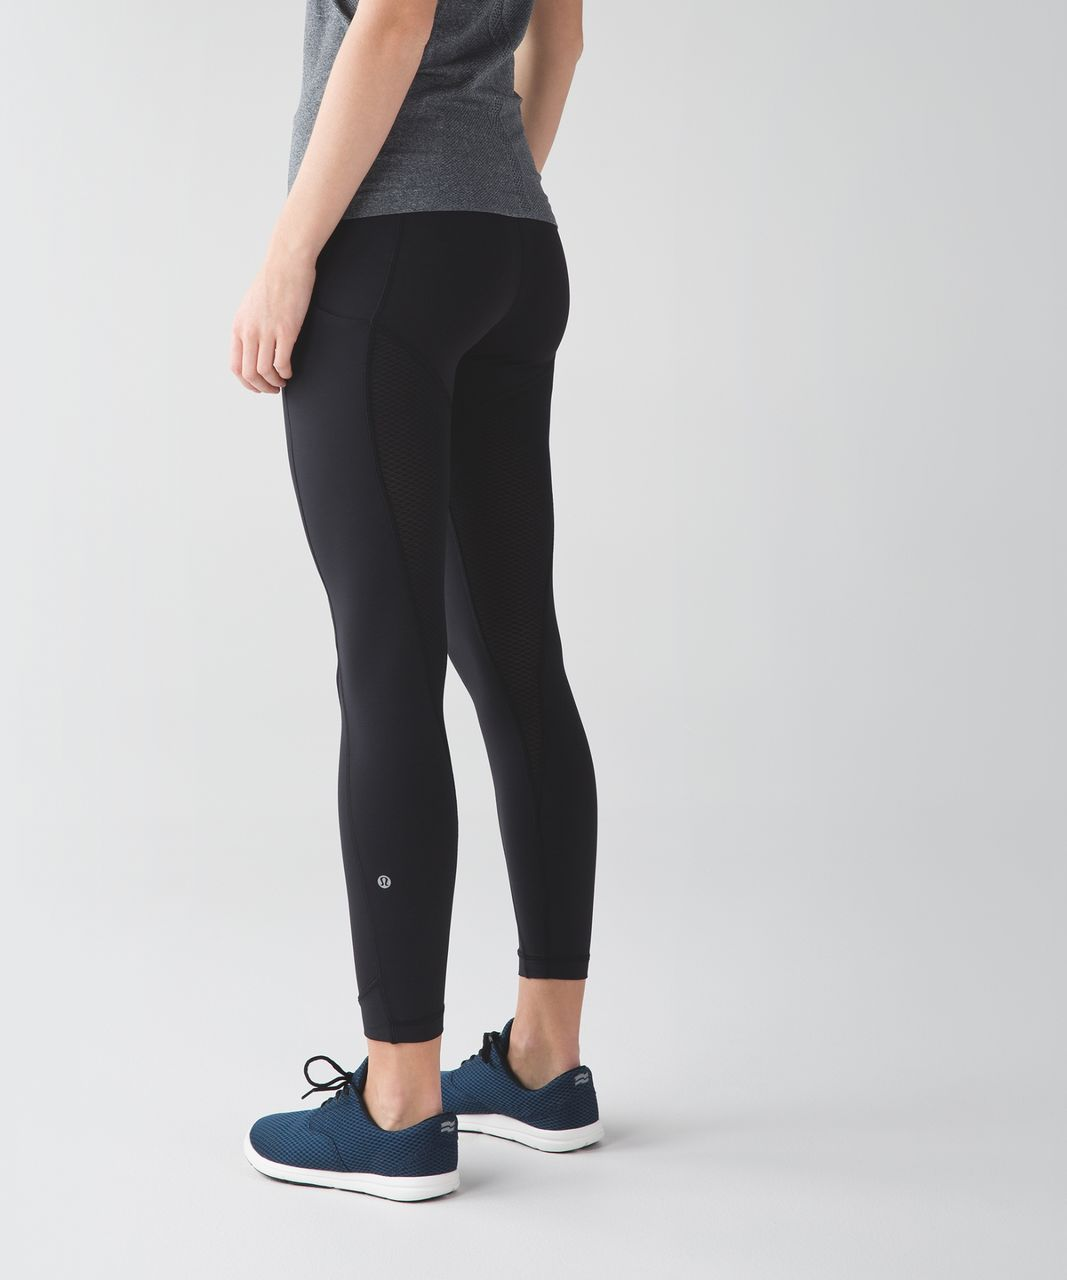 Lululemon Time to Shine Tight - Black